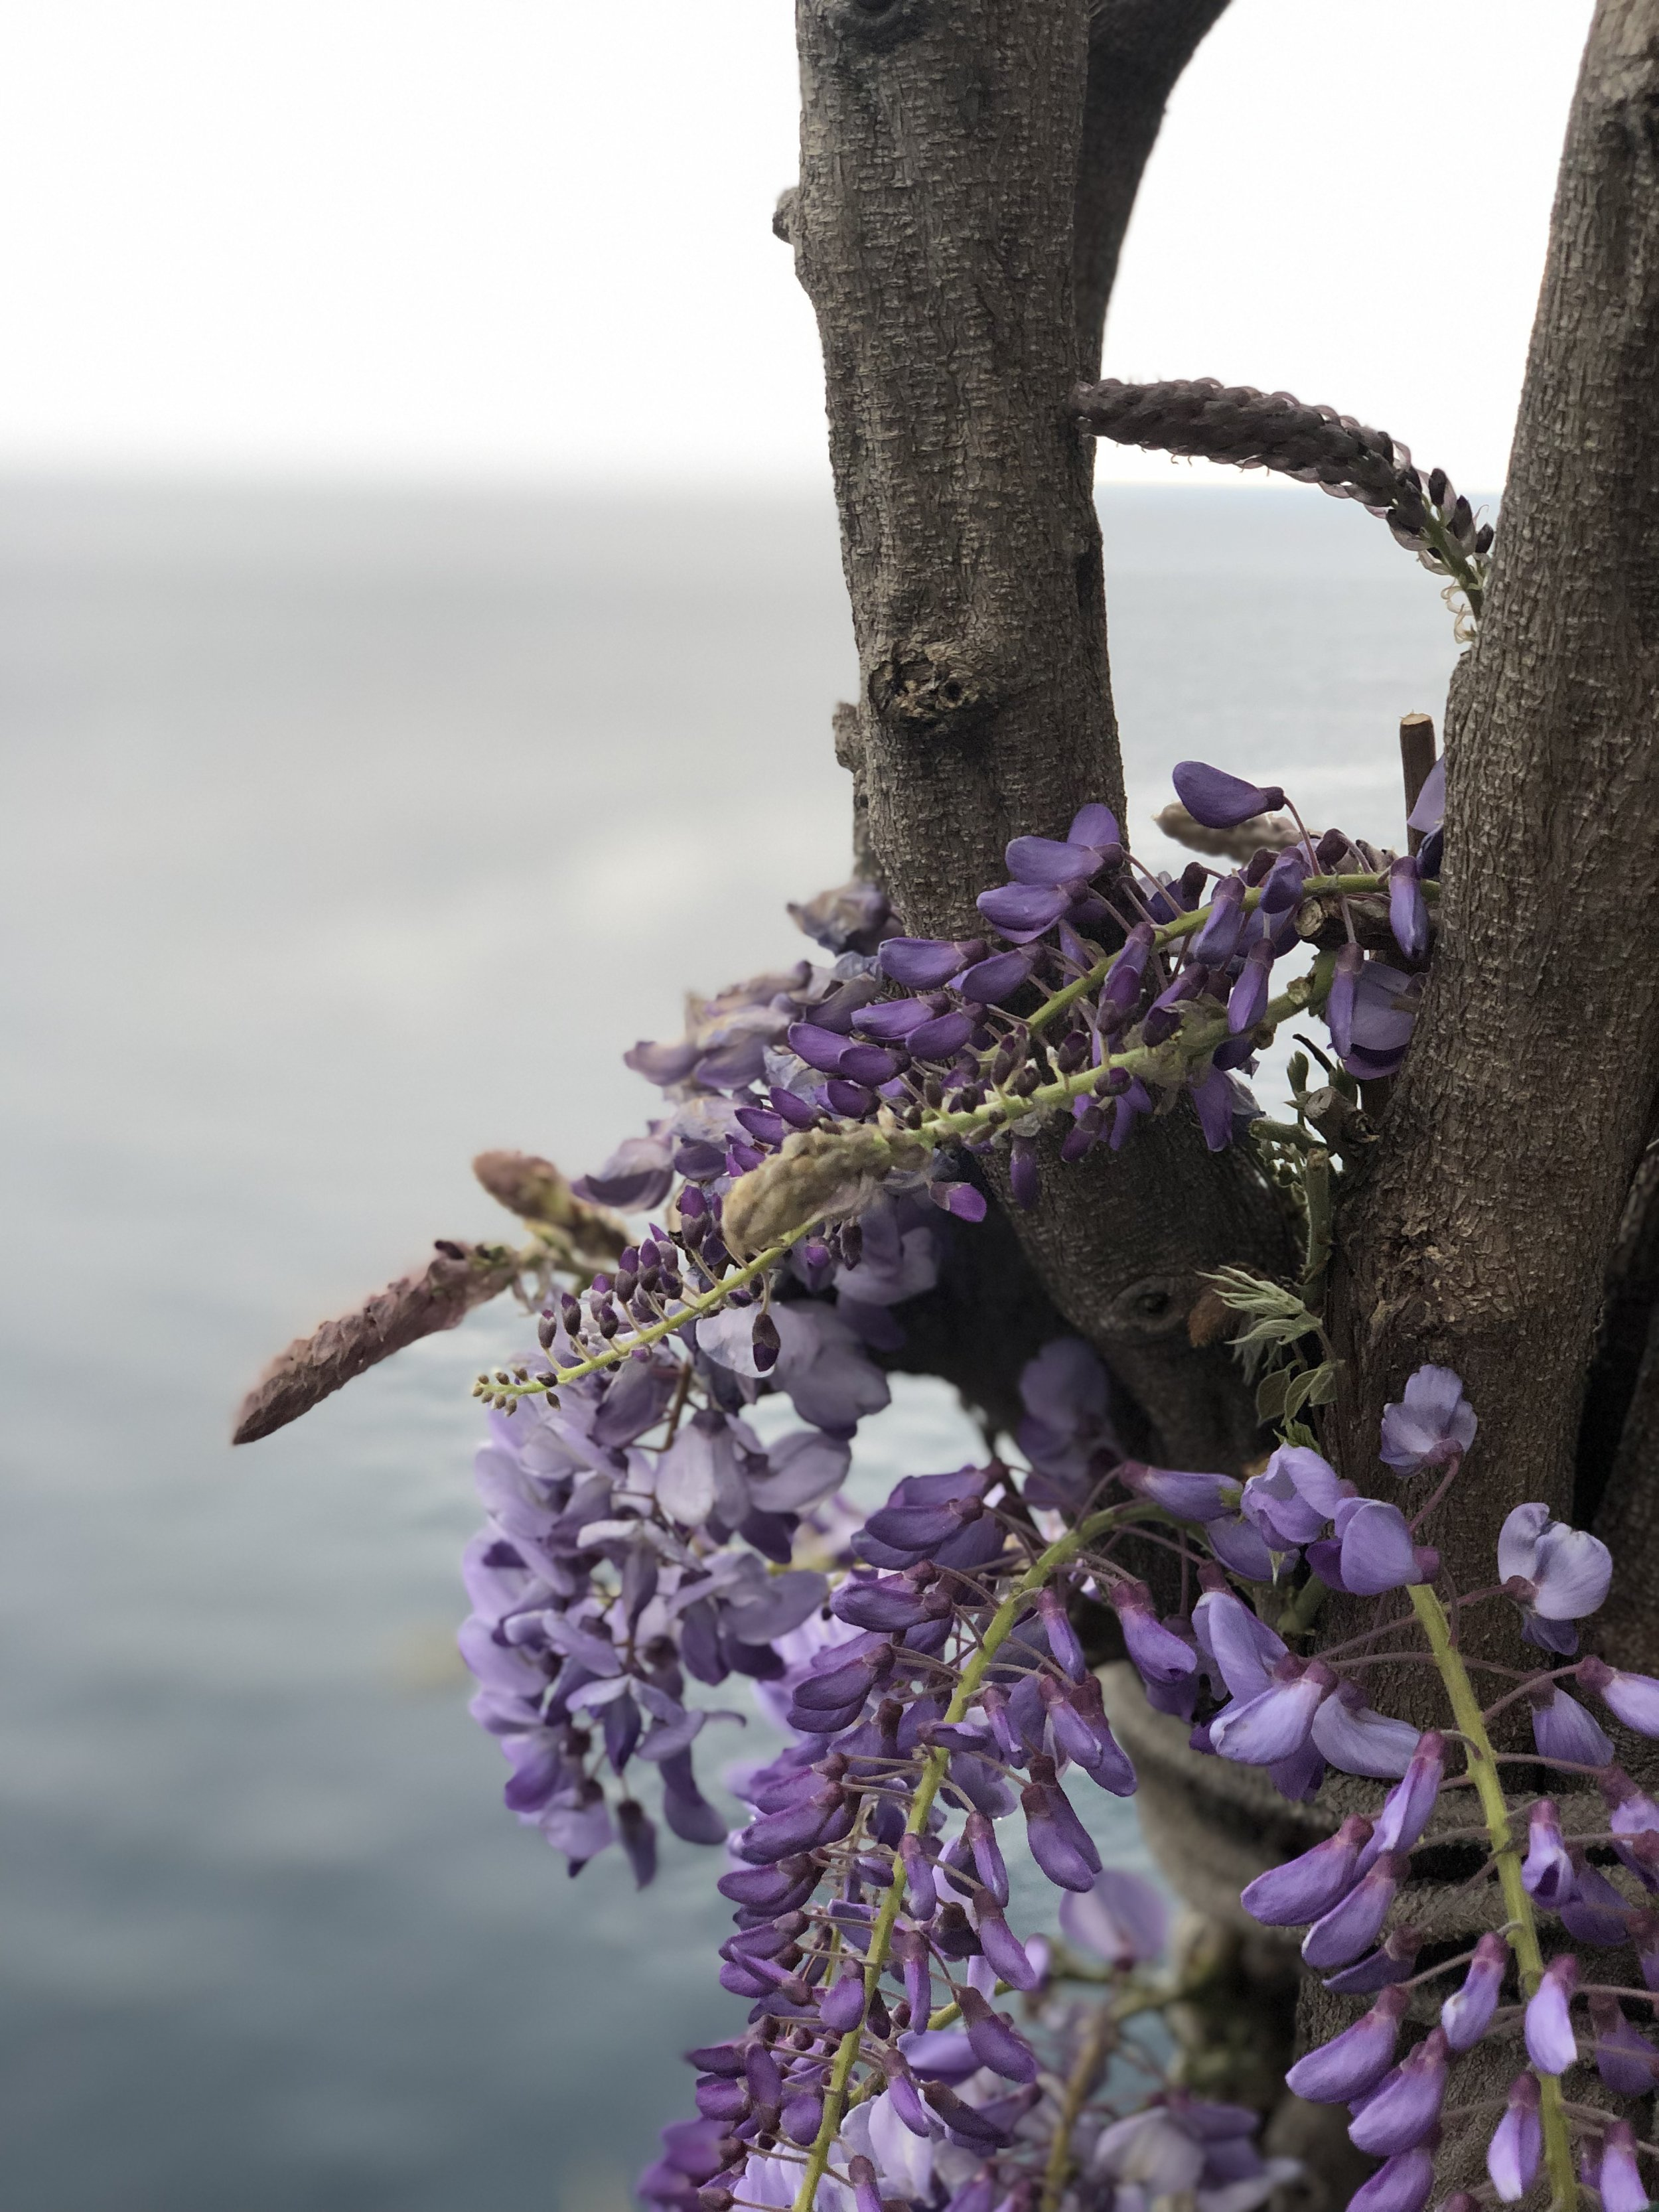 Pros and cons when visiting the Amalfi coast in springtime: - PROS:Cheaper hotelsFewer peopleLess traffic on the roadsPerfect temperatures for hikingLOADS of wisteria everywhereStill a lot nicer weather than in The UK at that time of yearCONS:A bit too coldSome things aren't open yet